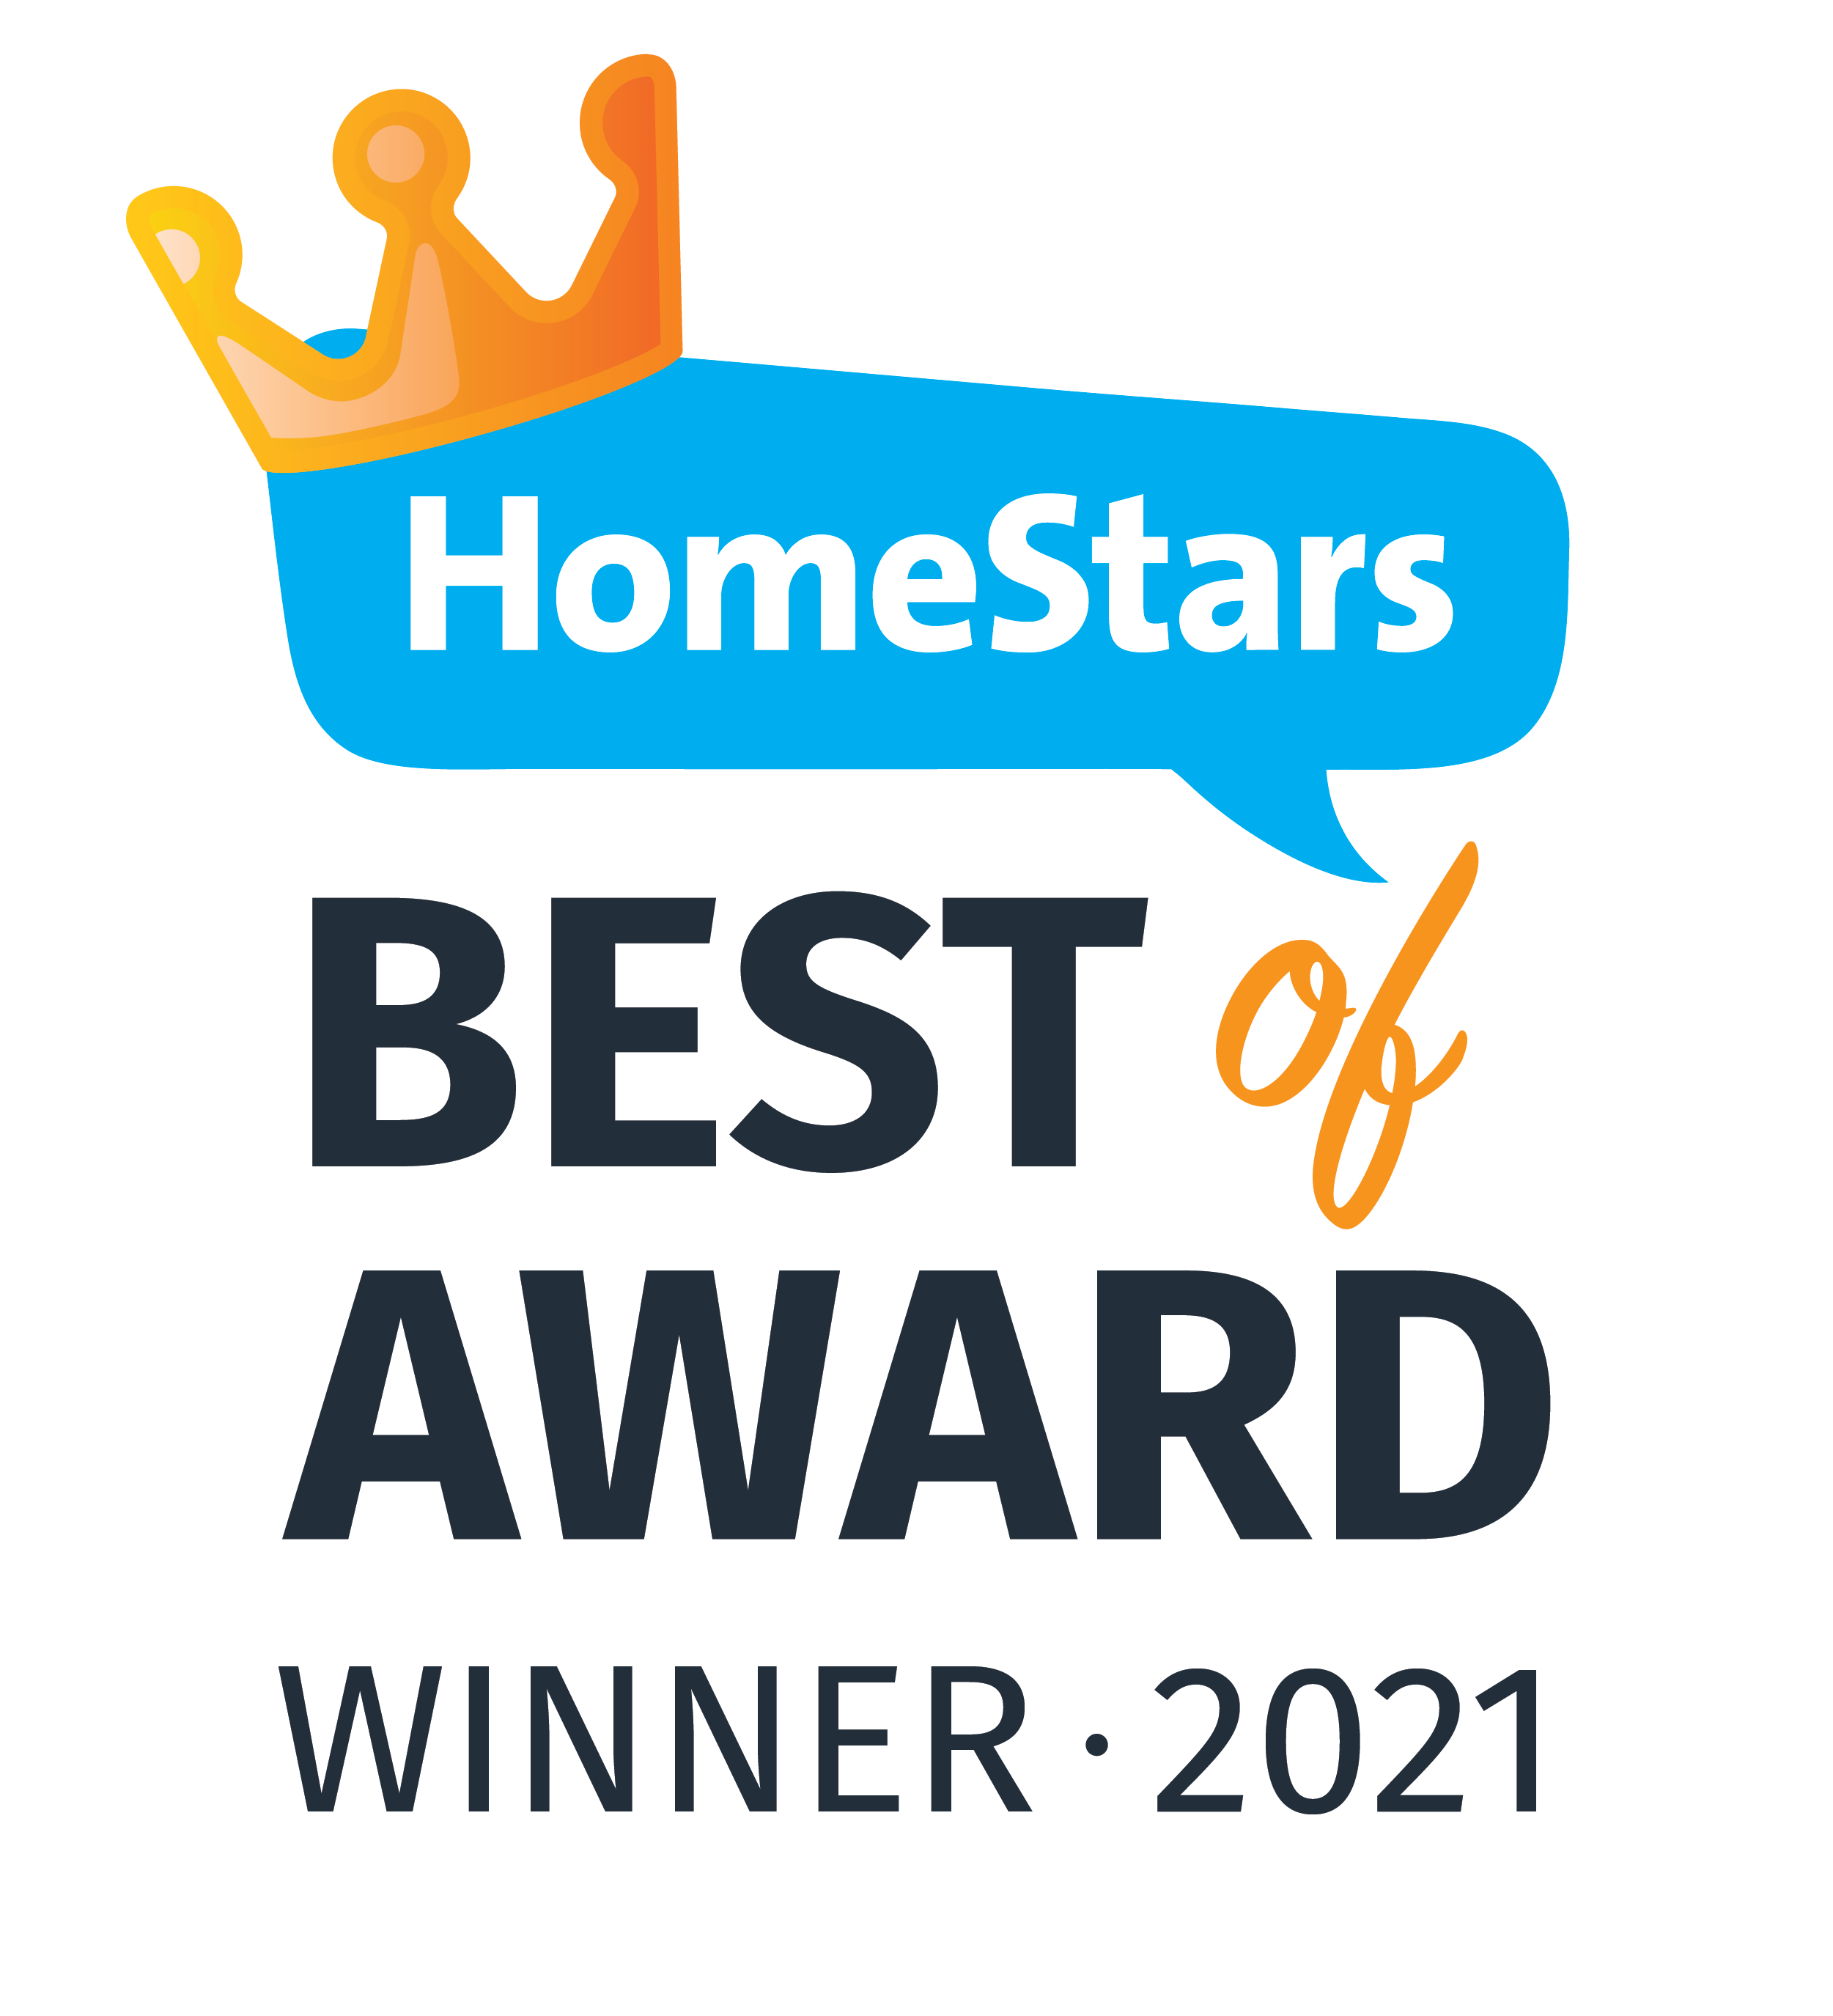 Home Stars Best of Award 2021